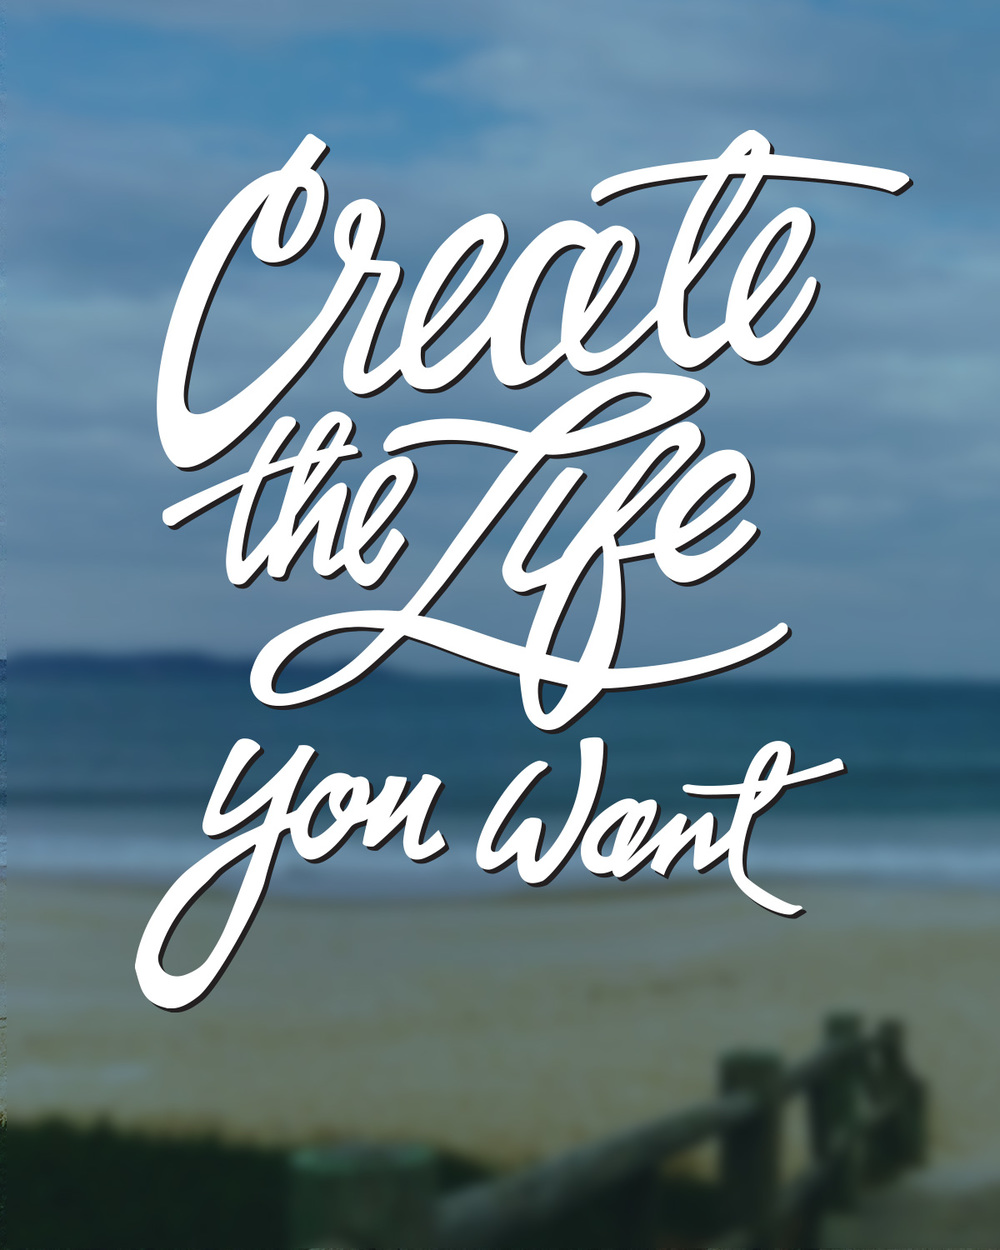 Create-the-life-you-want-hires-final.jpg